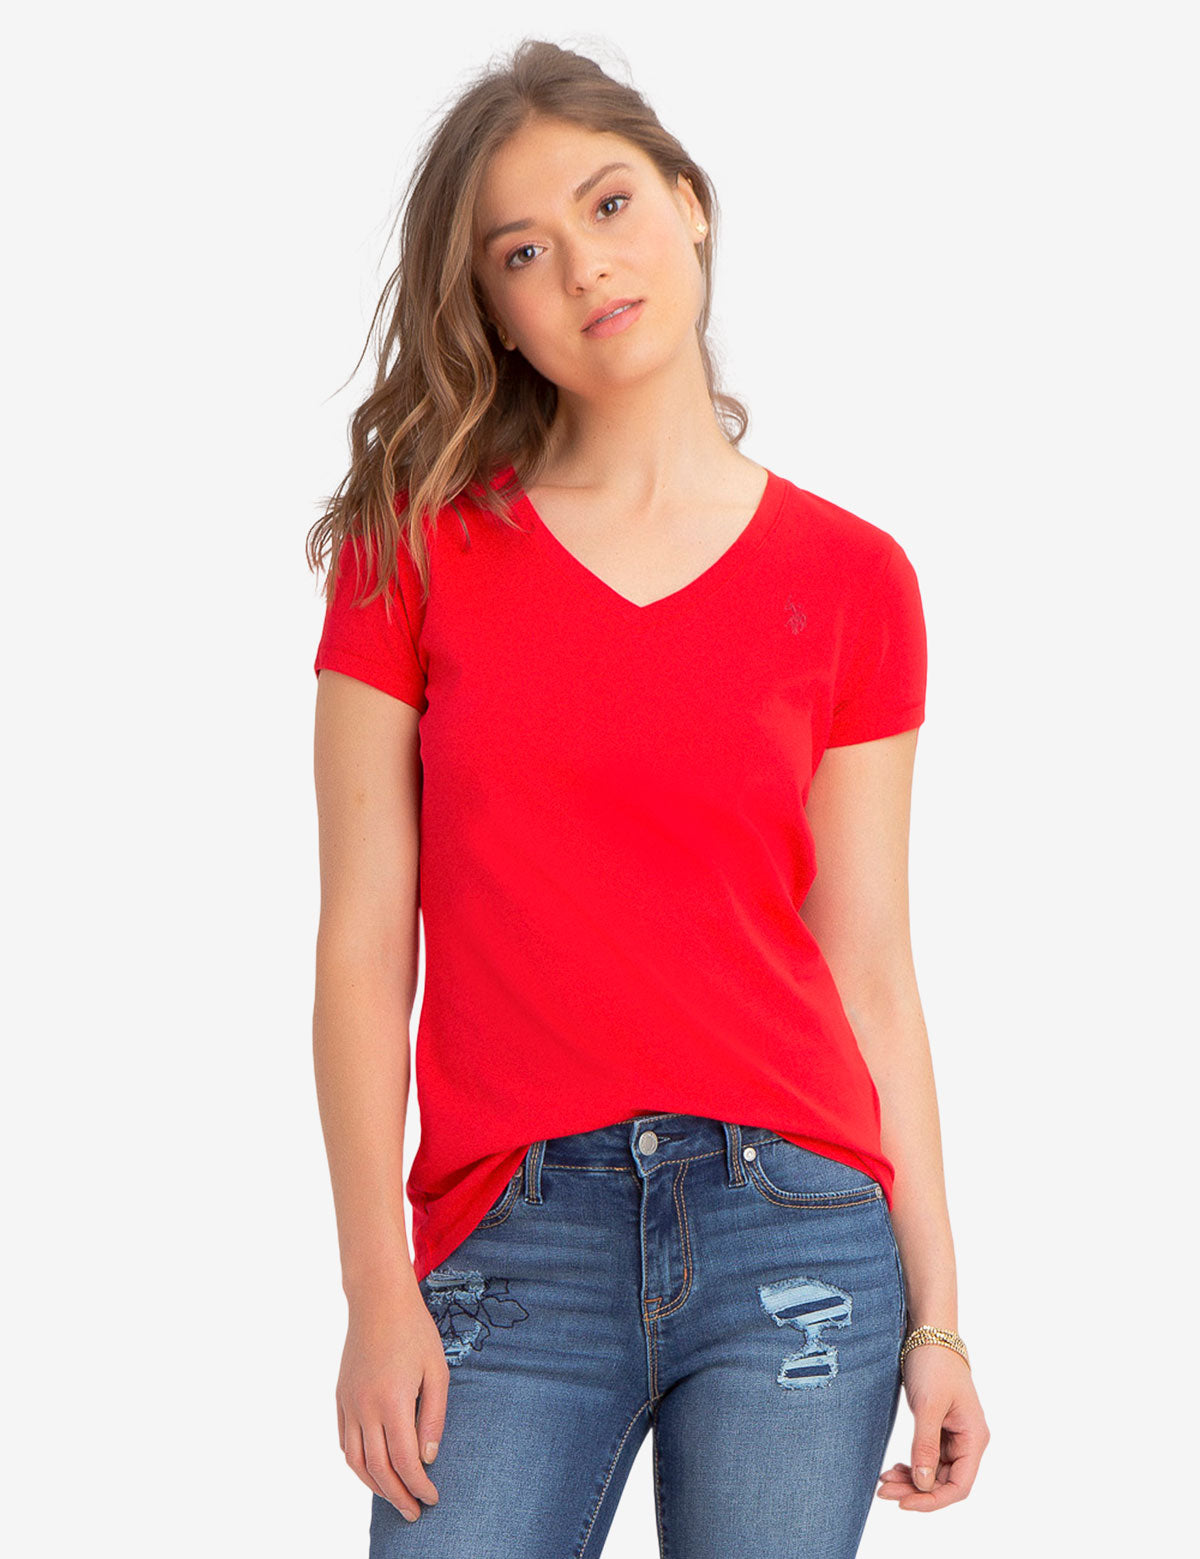 V NECK TEE - U.S. Polo Assn.